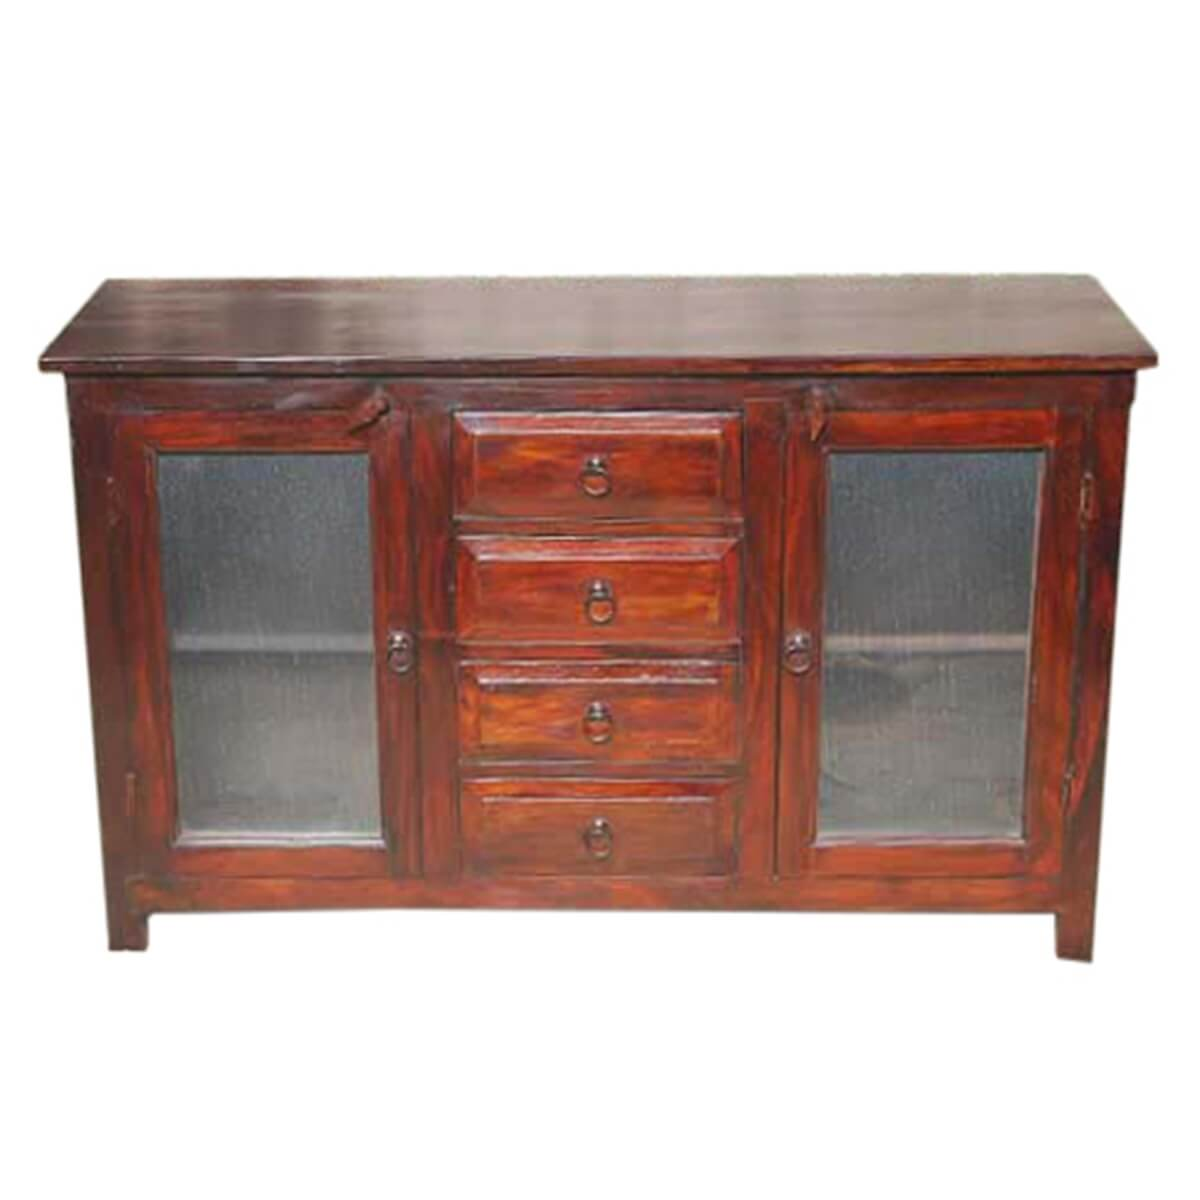 Rustic Frosted Solid Wood Glass Door 4 Drawer Sideboard